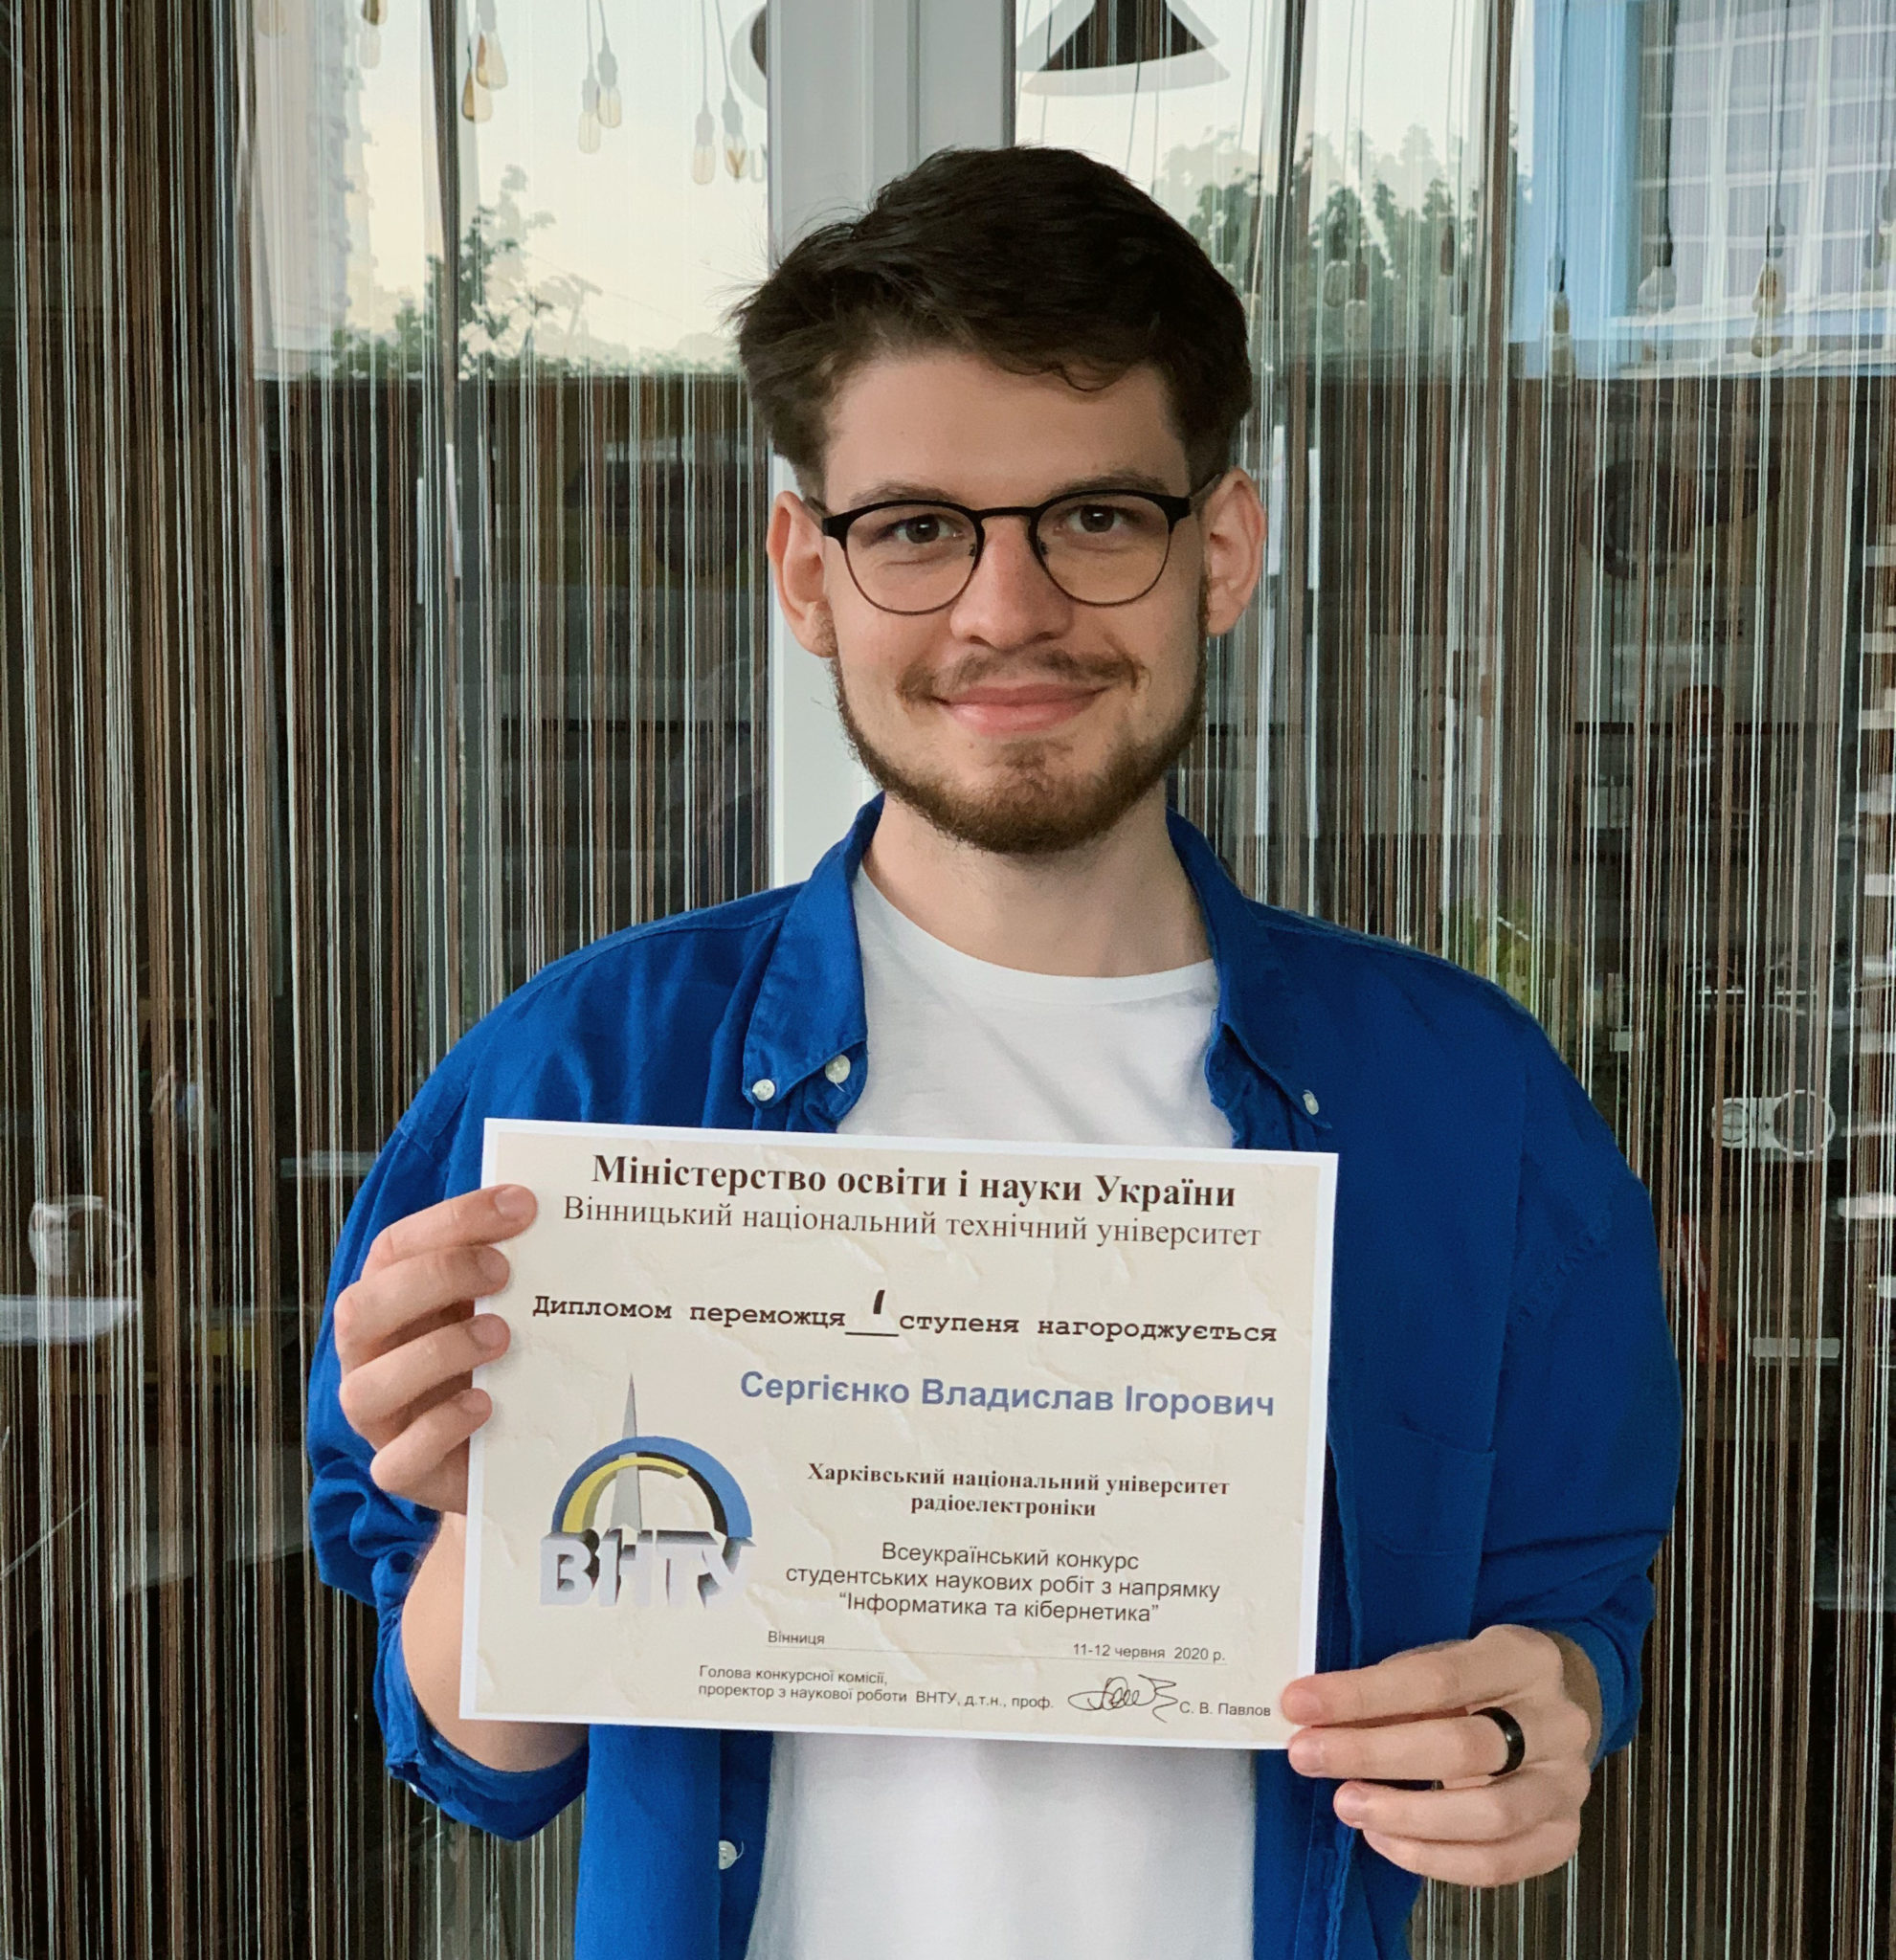 Congratulations to Vlad Sergienko on his victory in the All-Ukrainian competition!